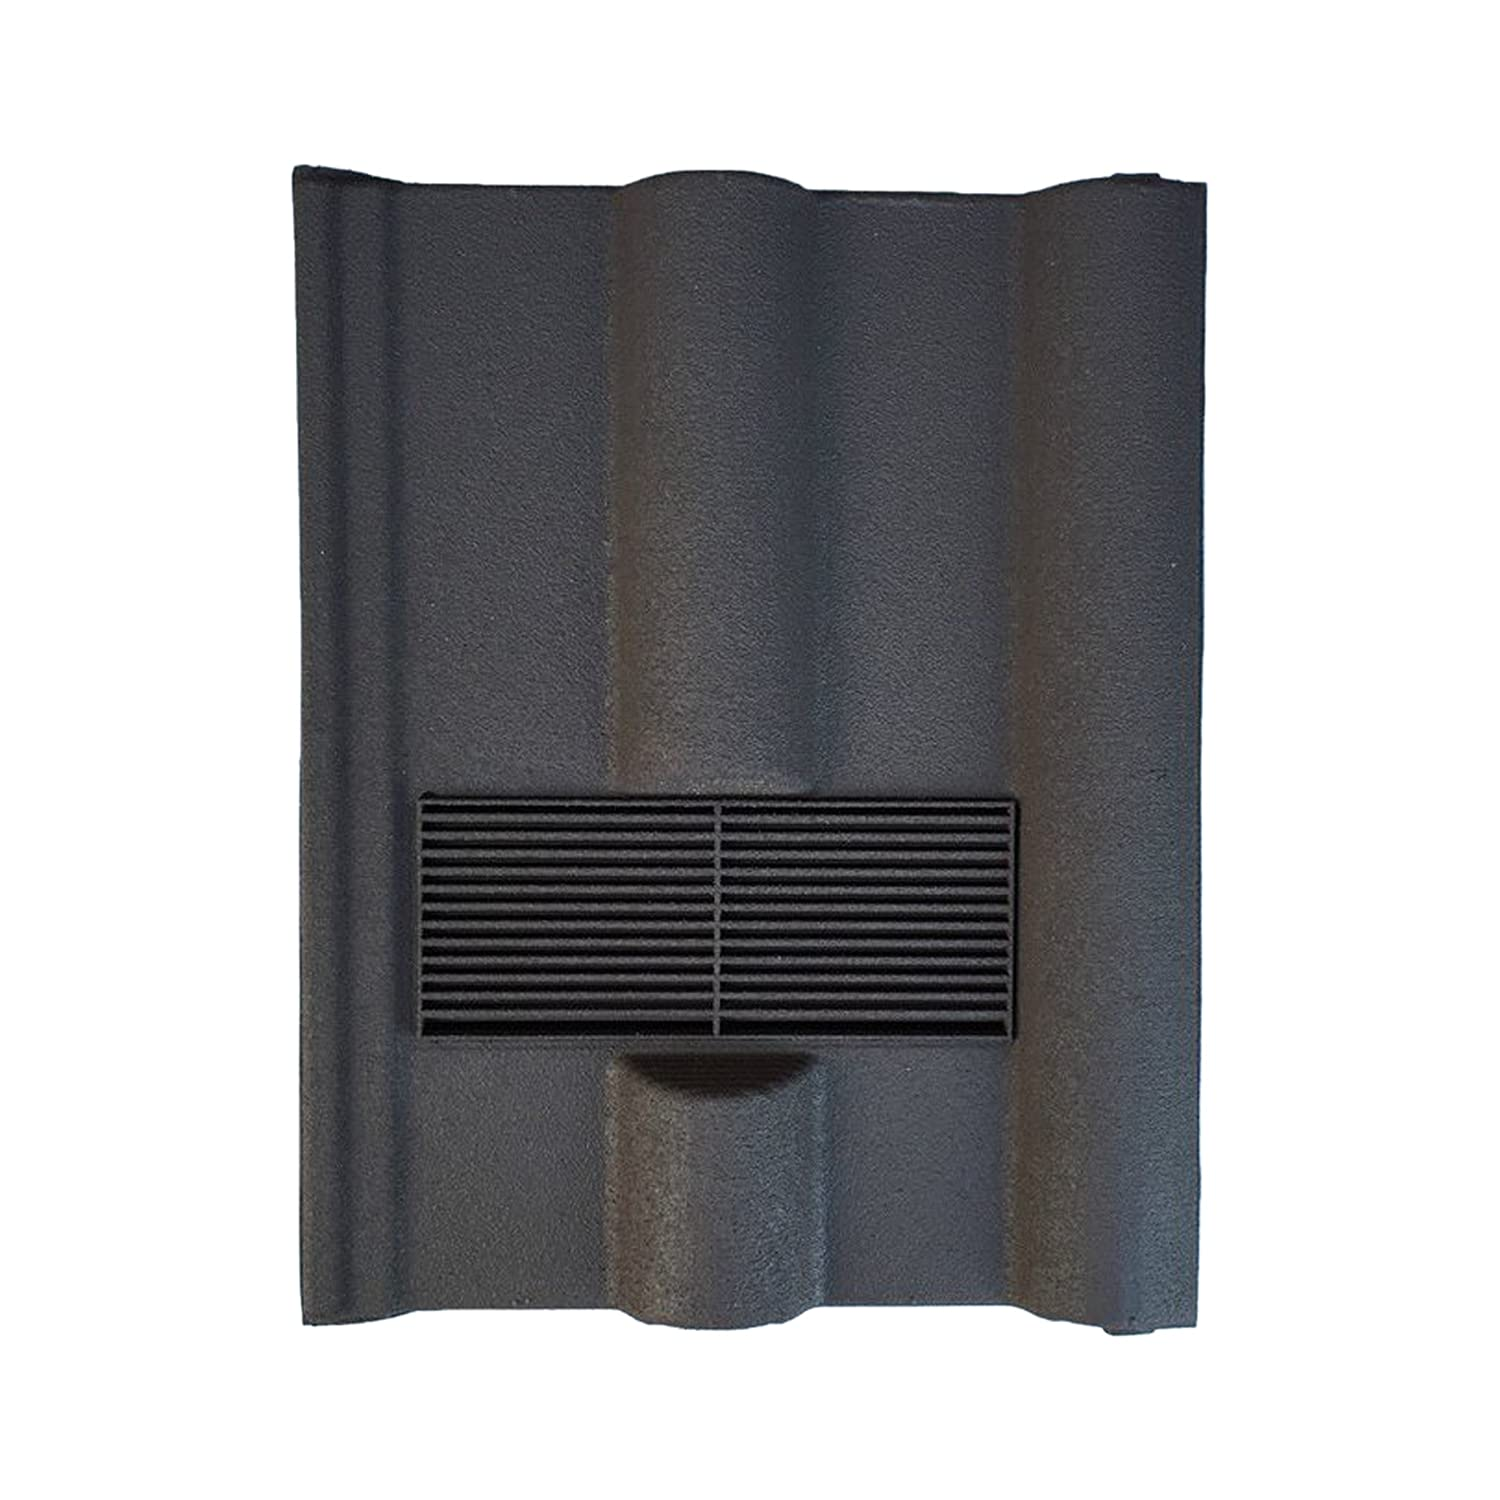 Brown - Sanded Available in 8 Colours Beddoes Products Roof Tile Vent To Fit Marley Wessex Roof Tiles With Pipe Adaptor For Extractor Pipe Connection